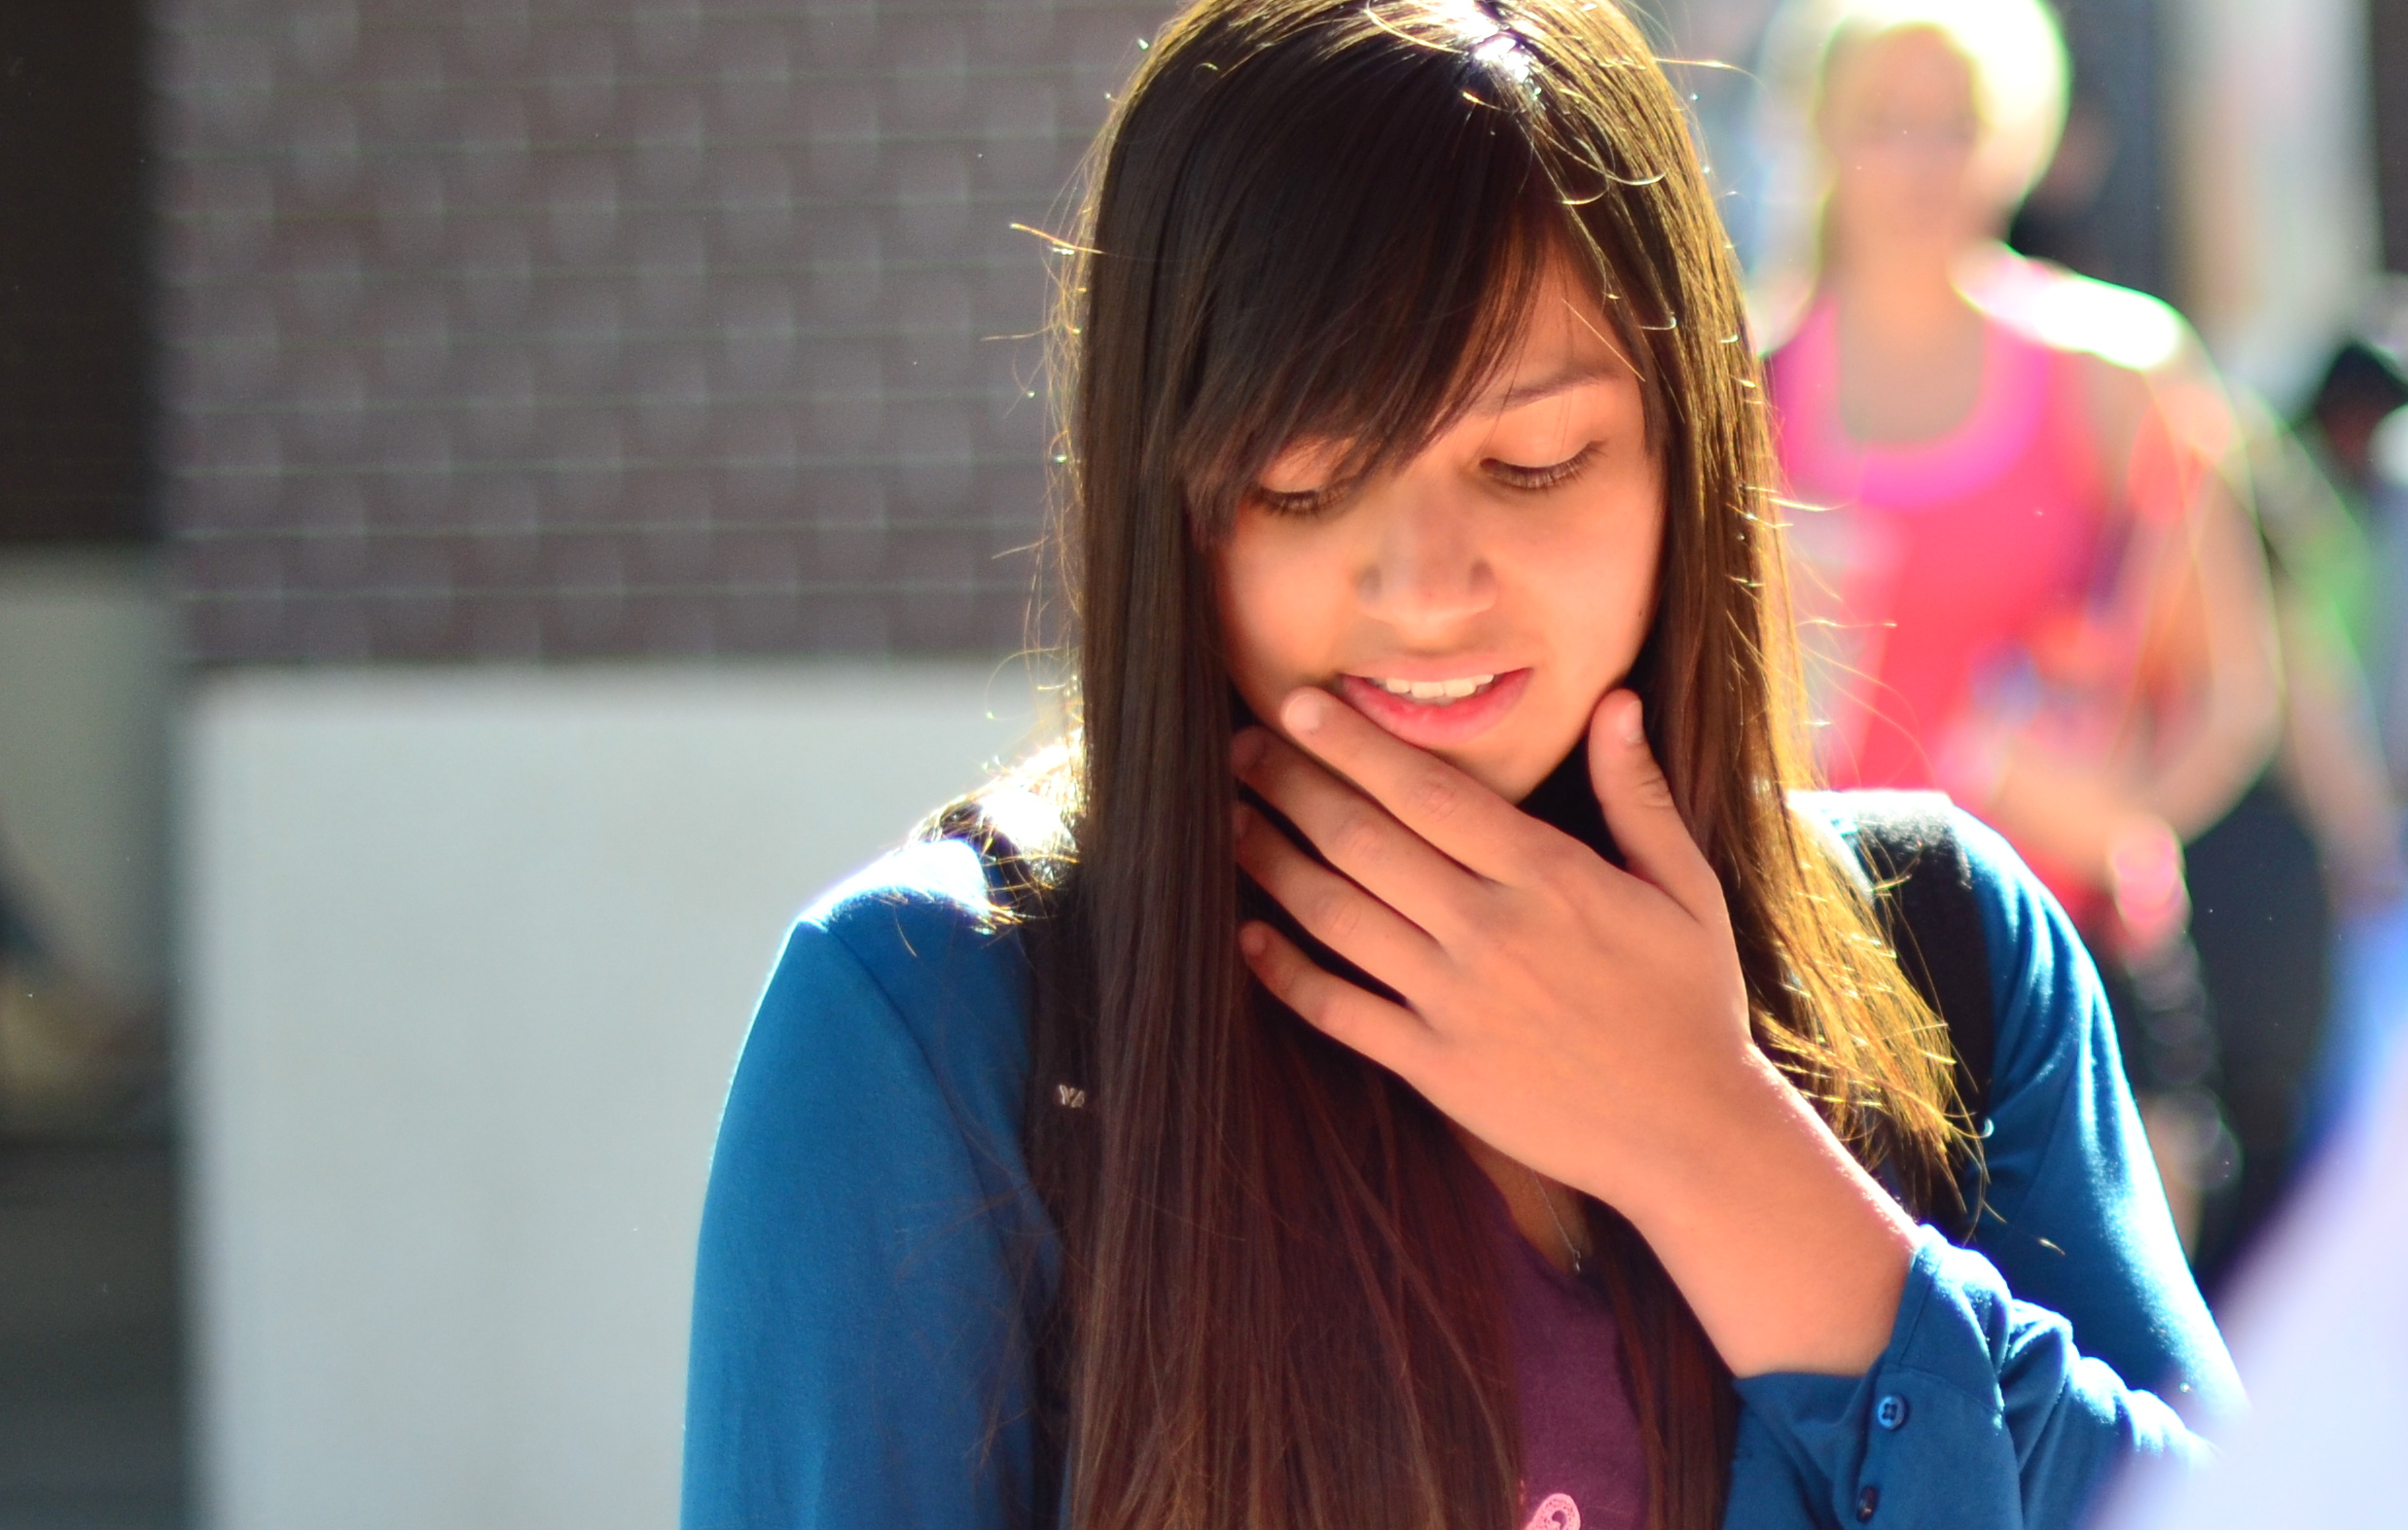 Student with hand on face contemplating something